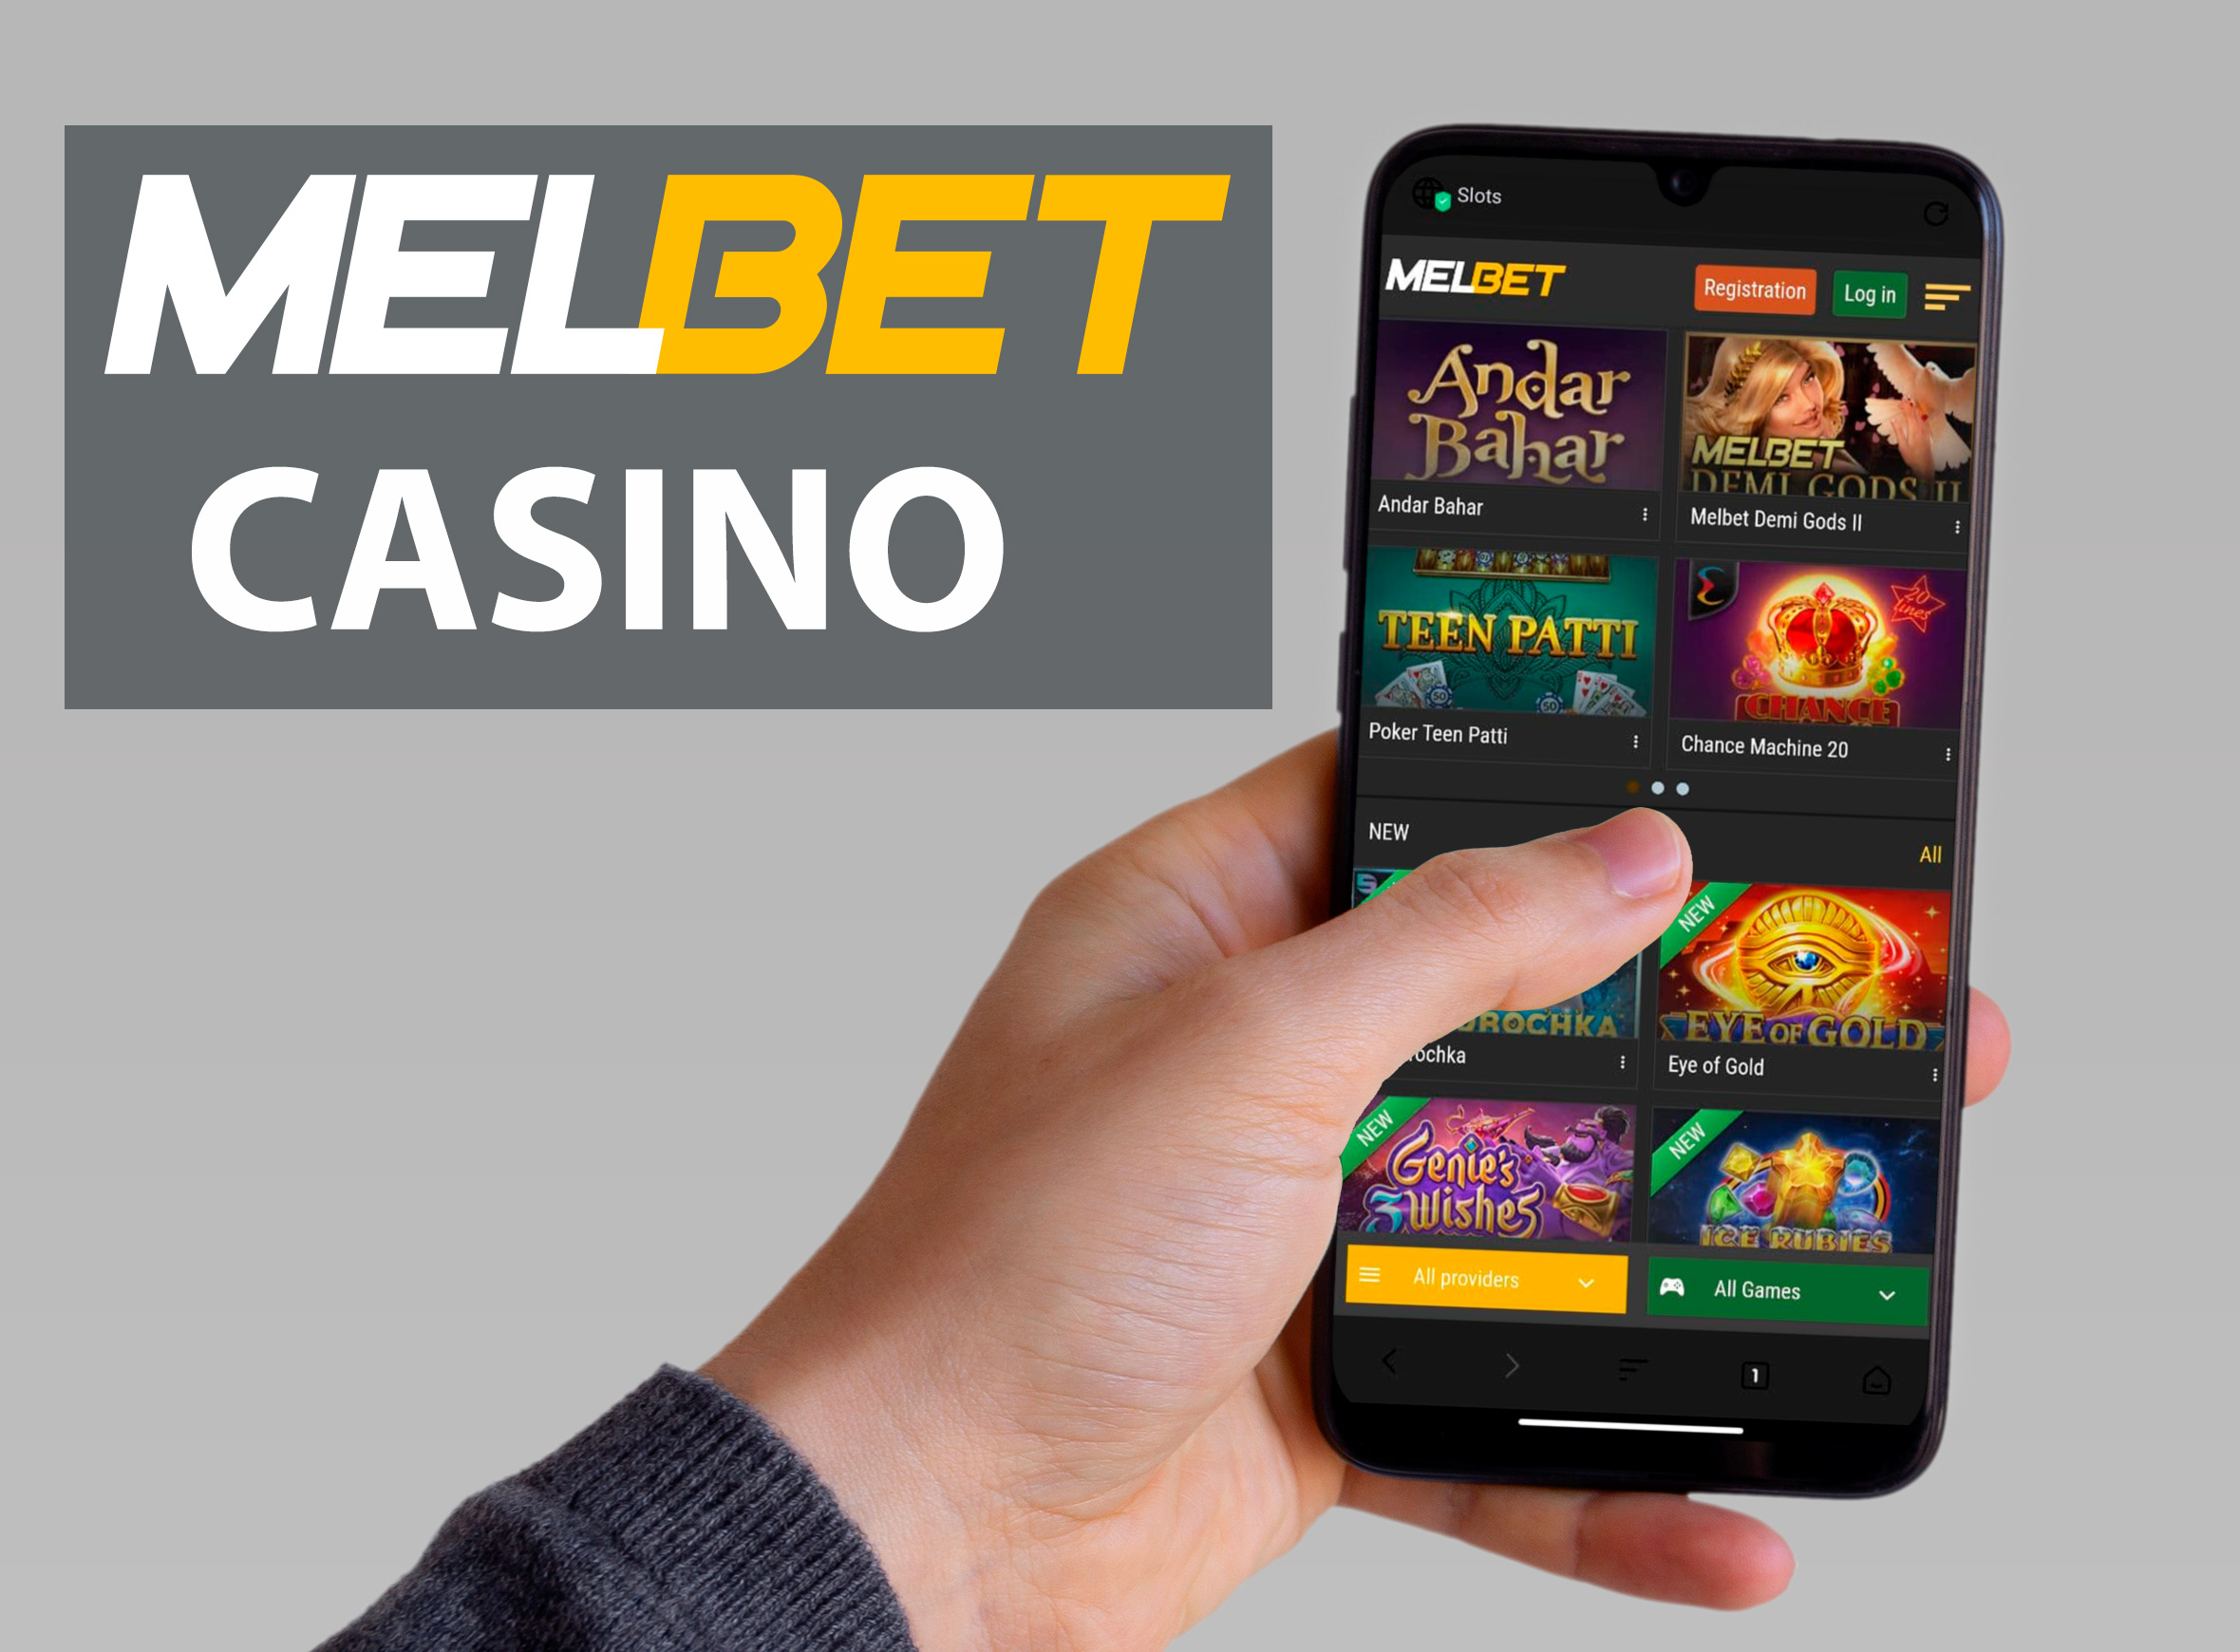 Find your favorite casino games and play them in Melbet casino.